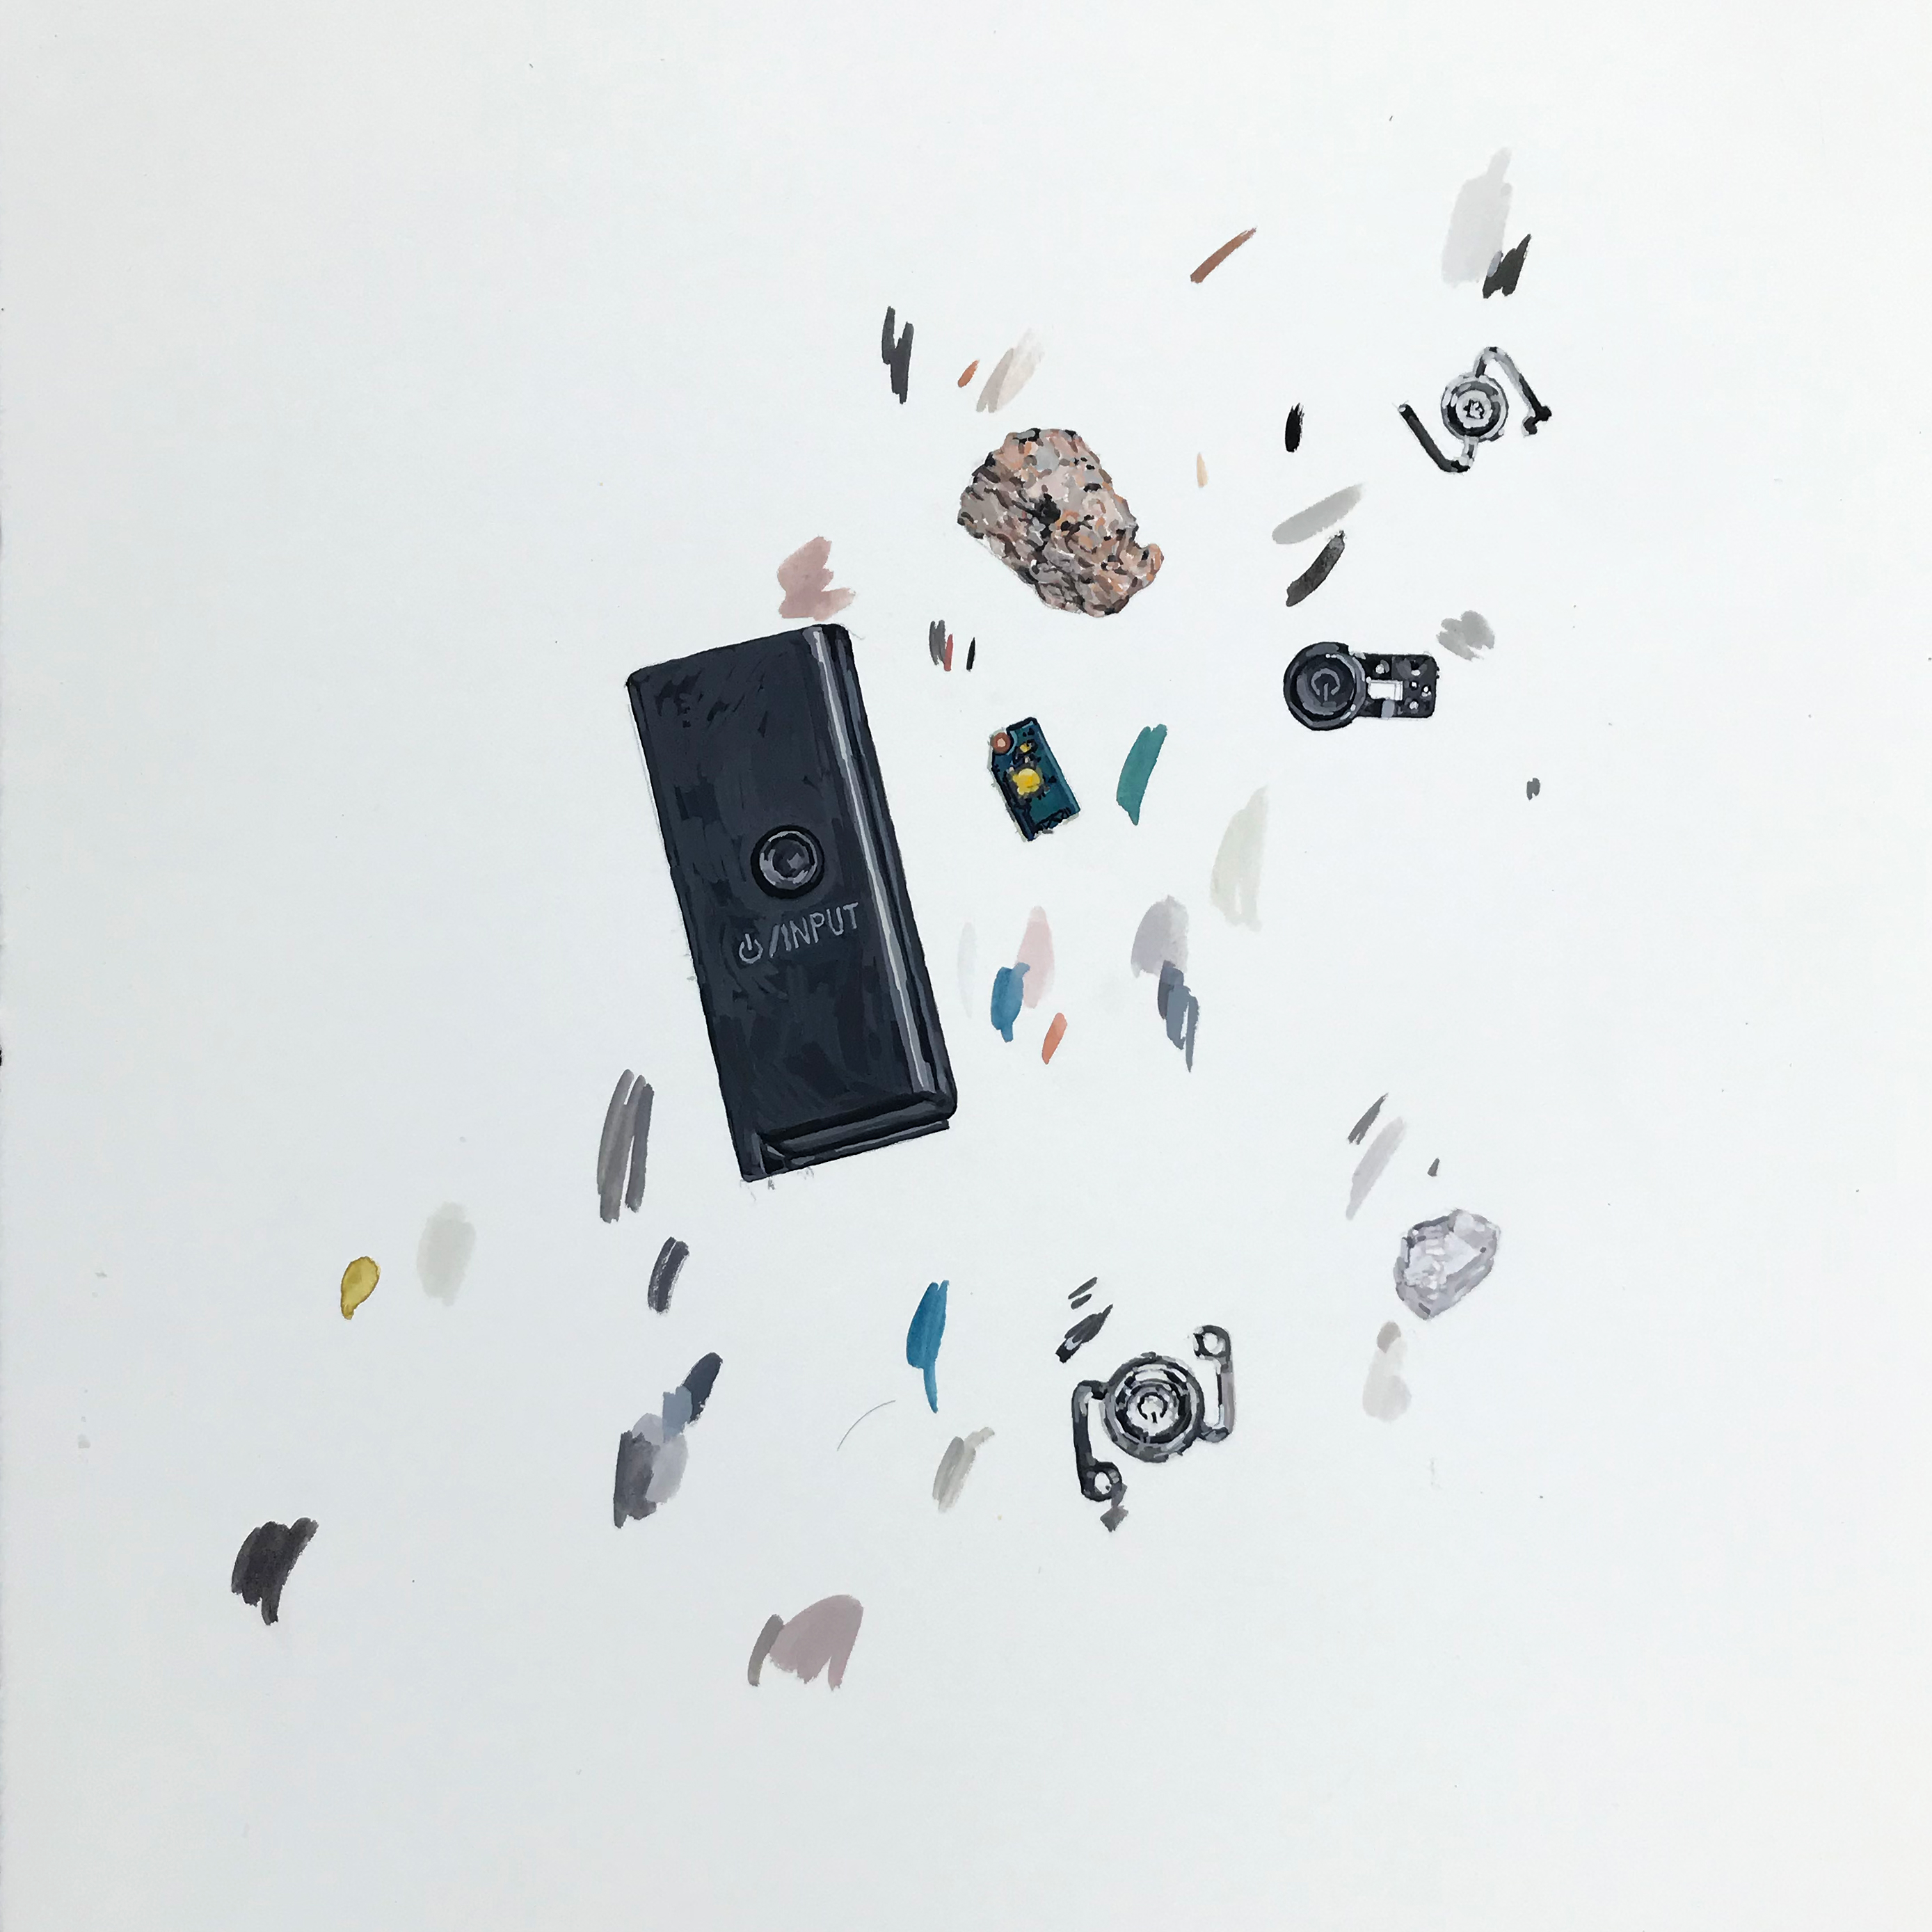 Black Iphone Crystal and Remains